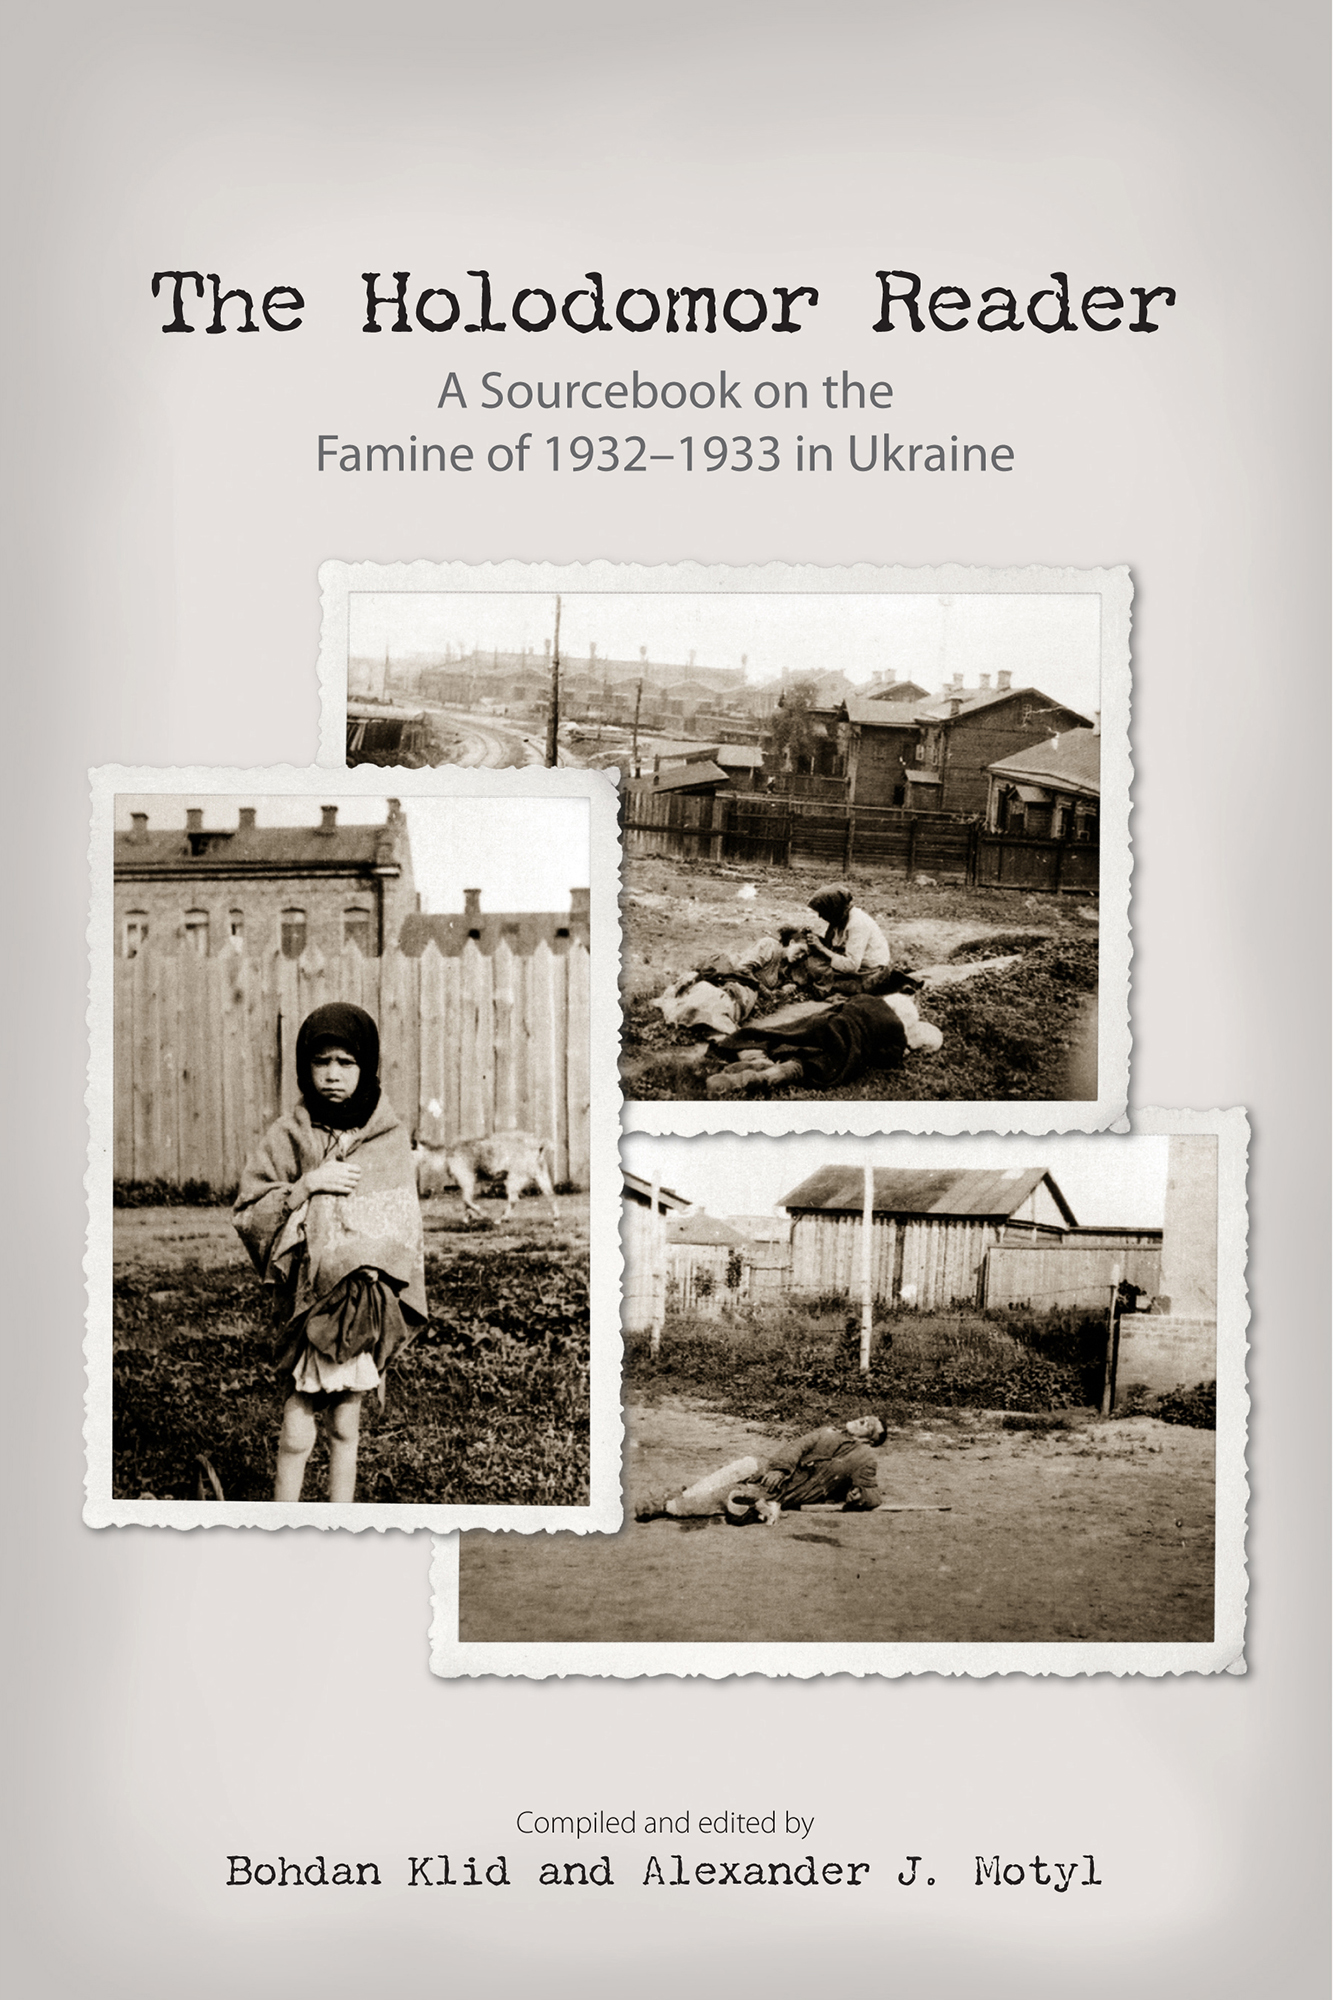 jpg a sourcebook on the famine of 1932 1933 in ukraine